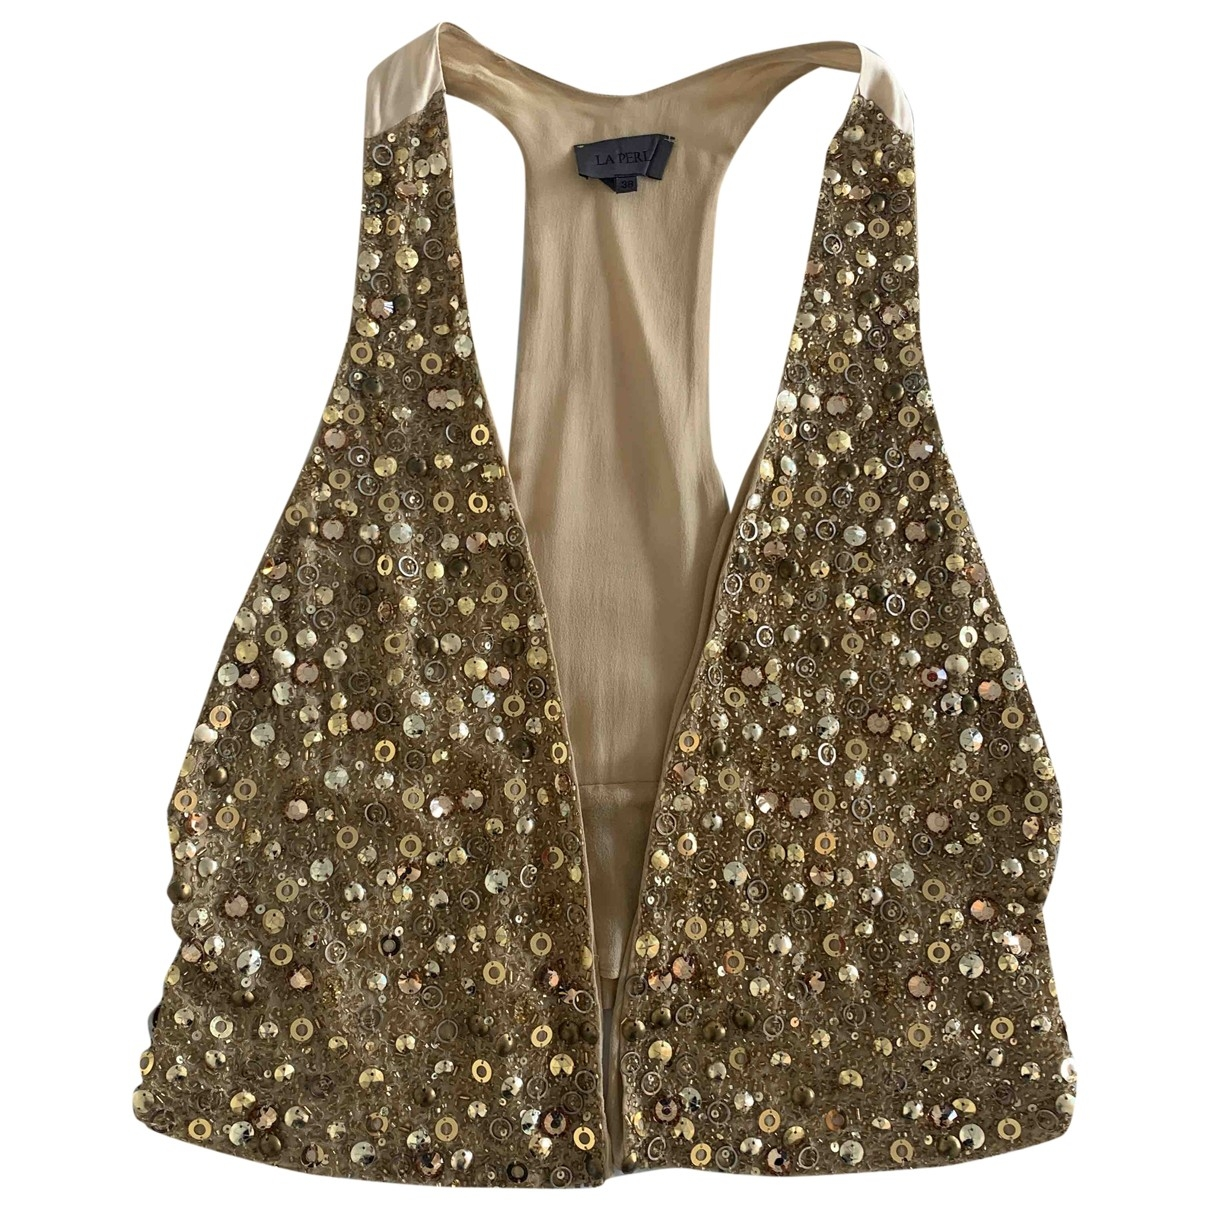 La Perla \N Gold Silk  top for Women 38 IT